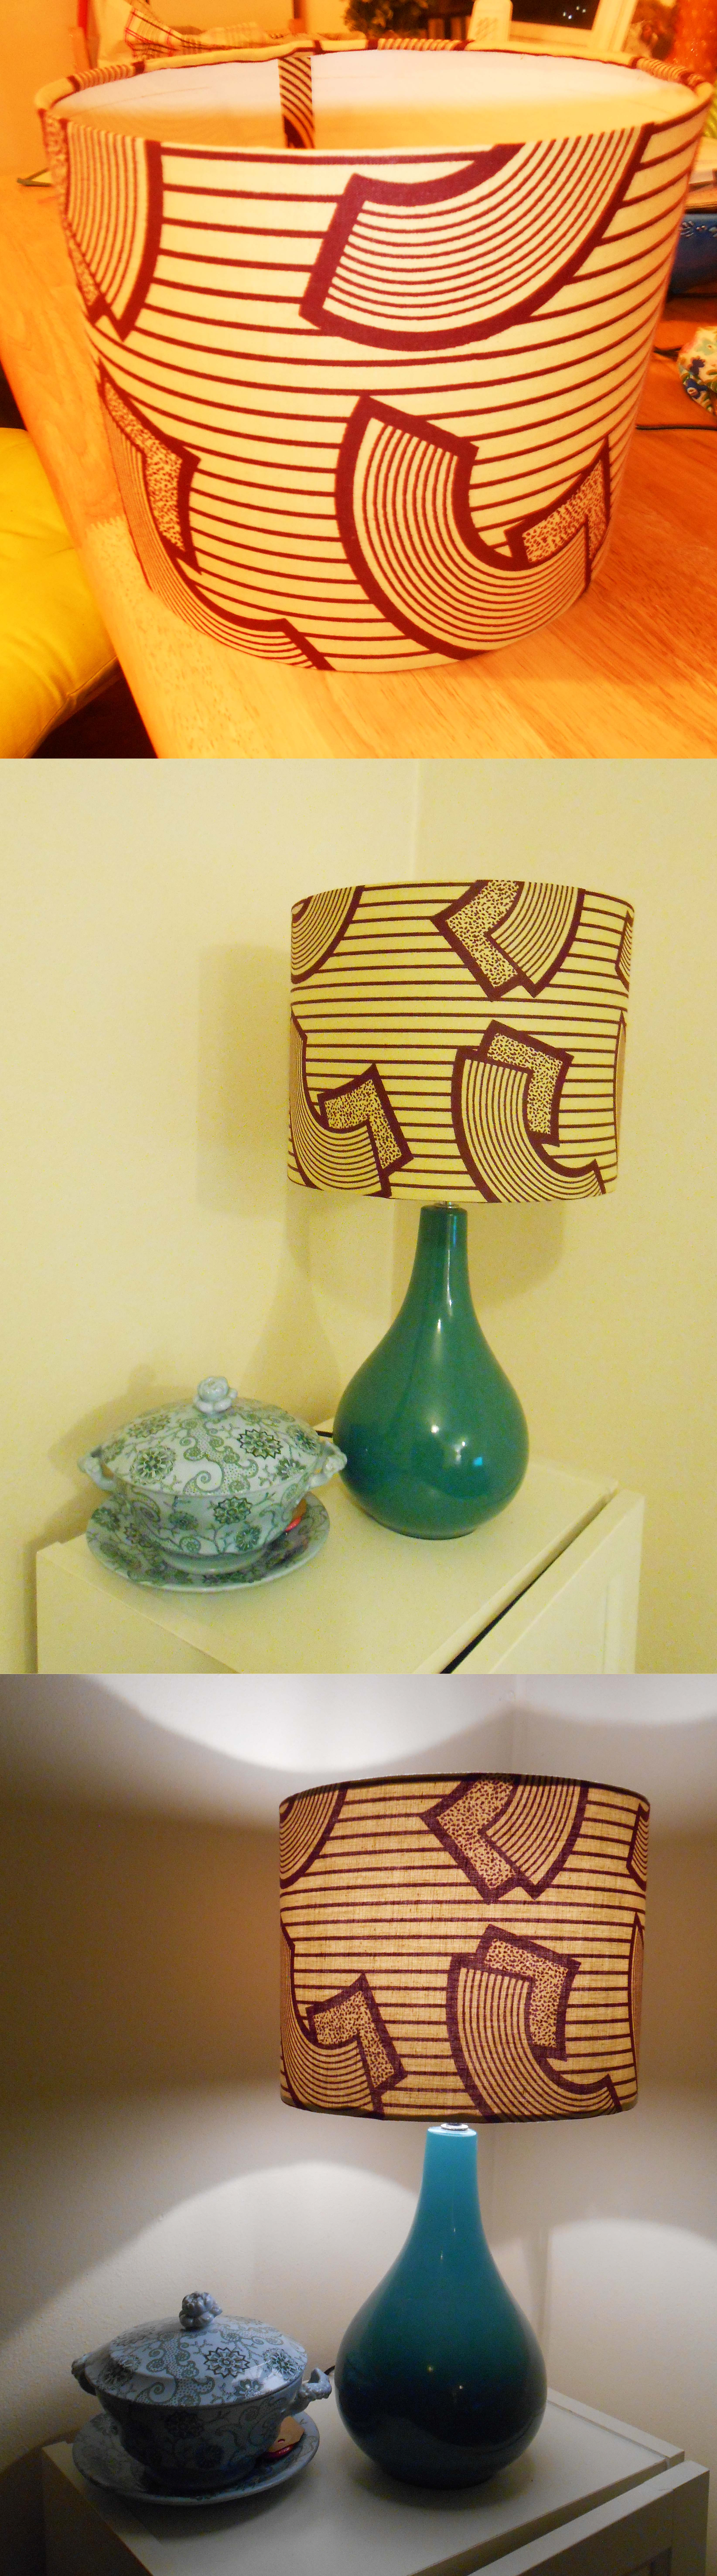 Fix Old Lamp Shades